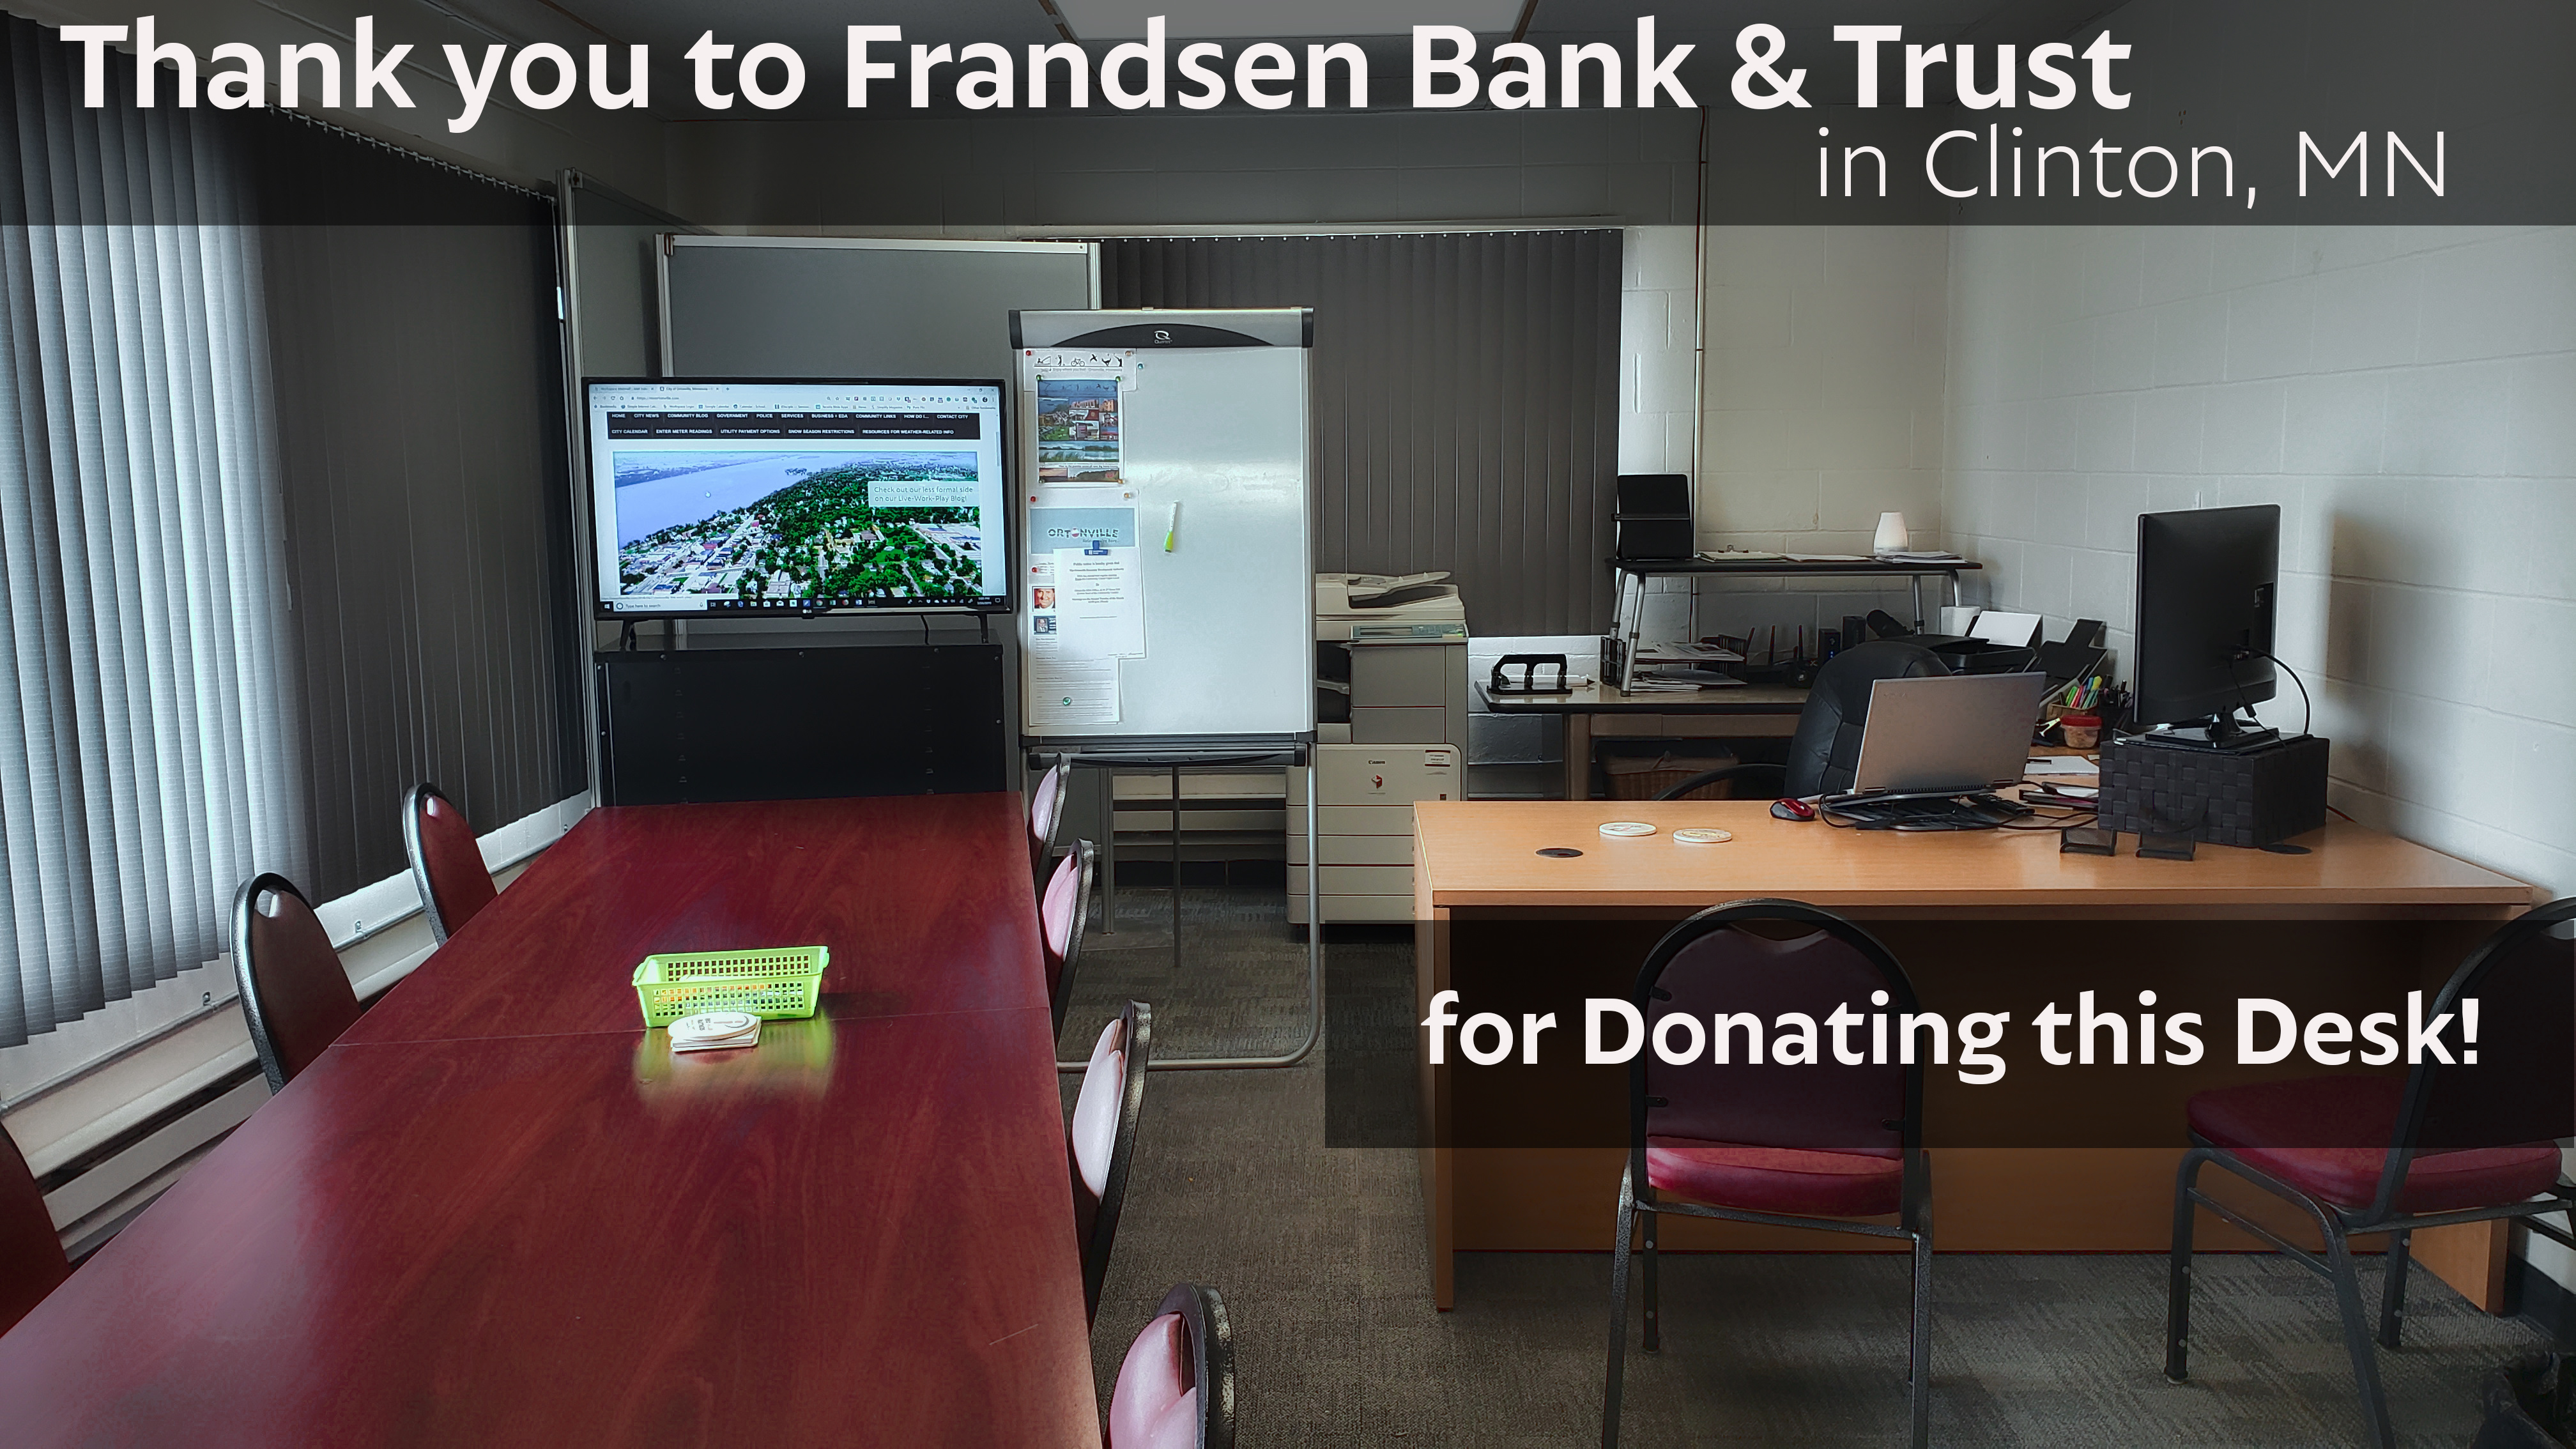 Thank you to Frandsen Bank & Trust!